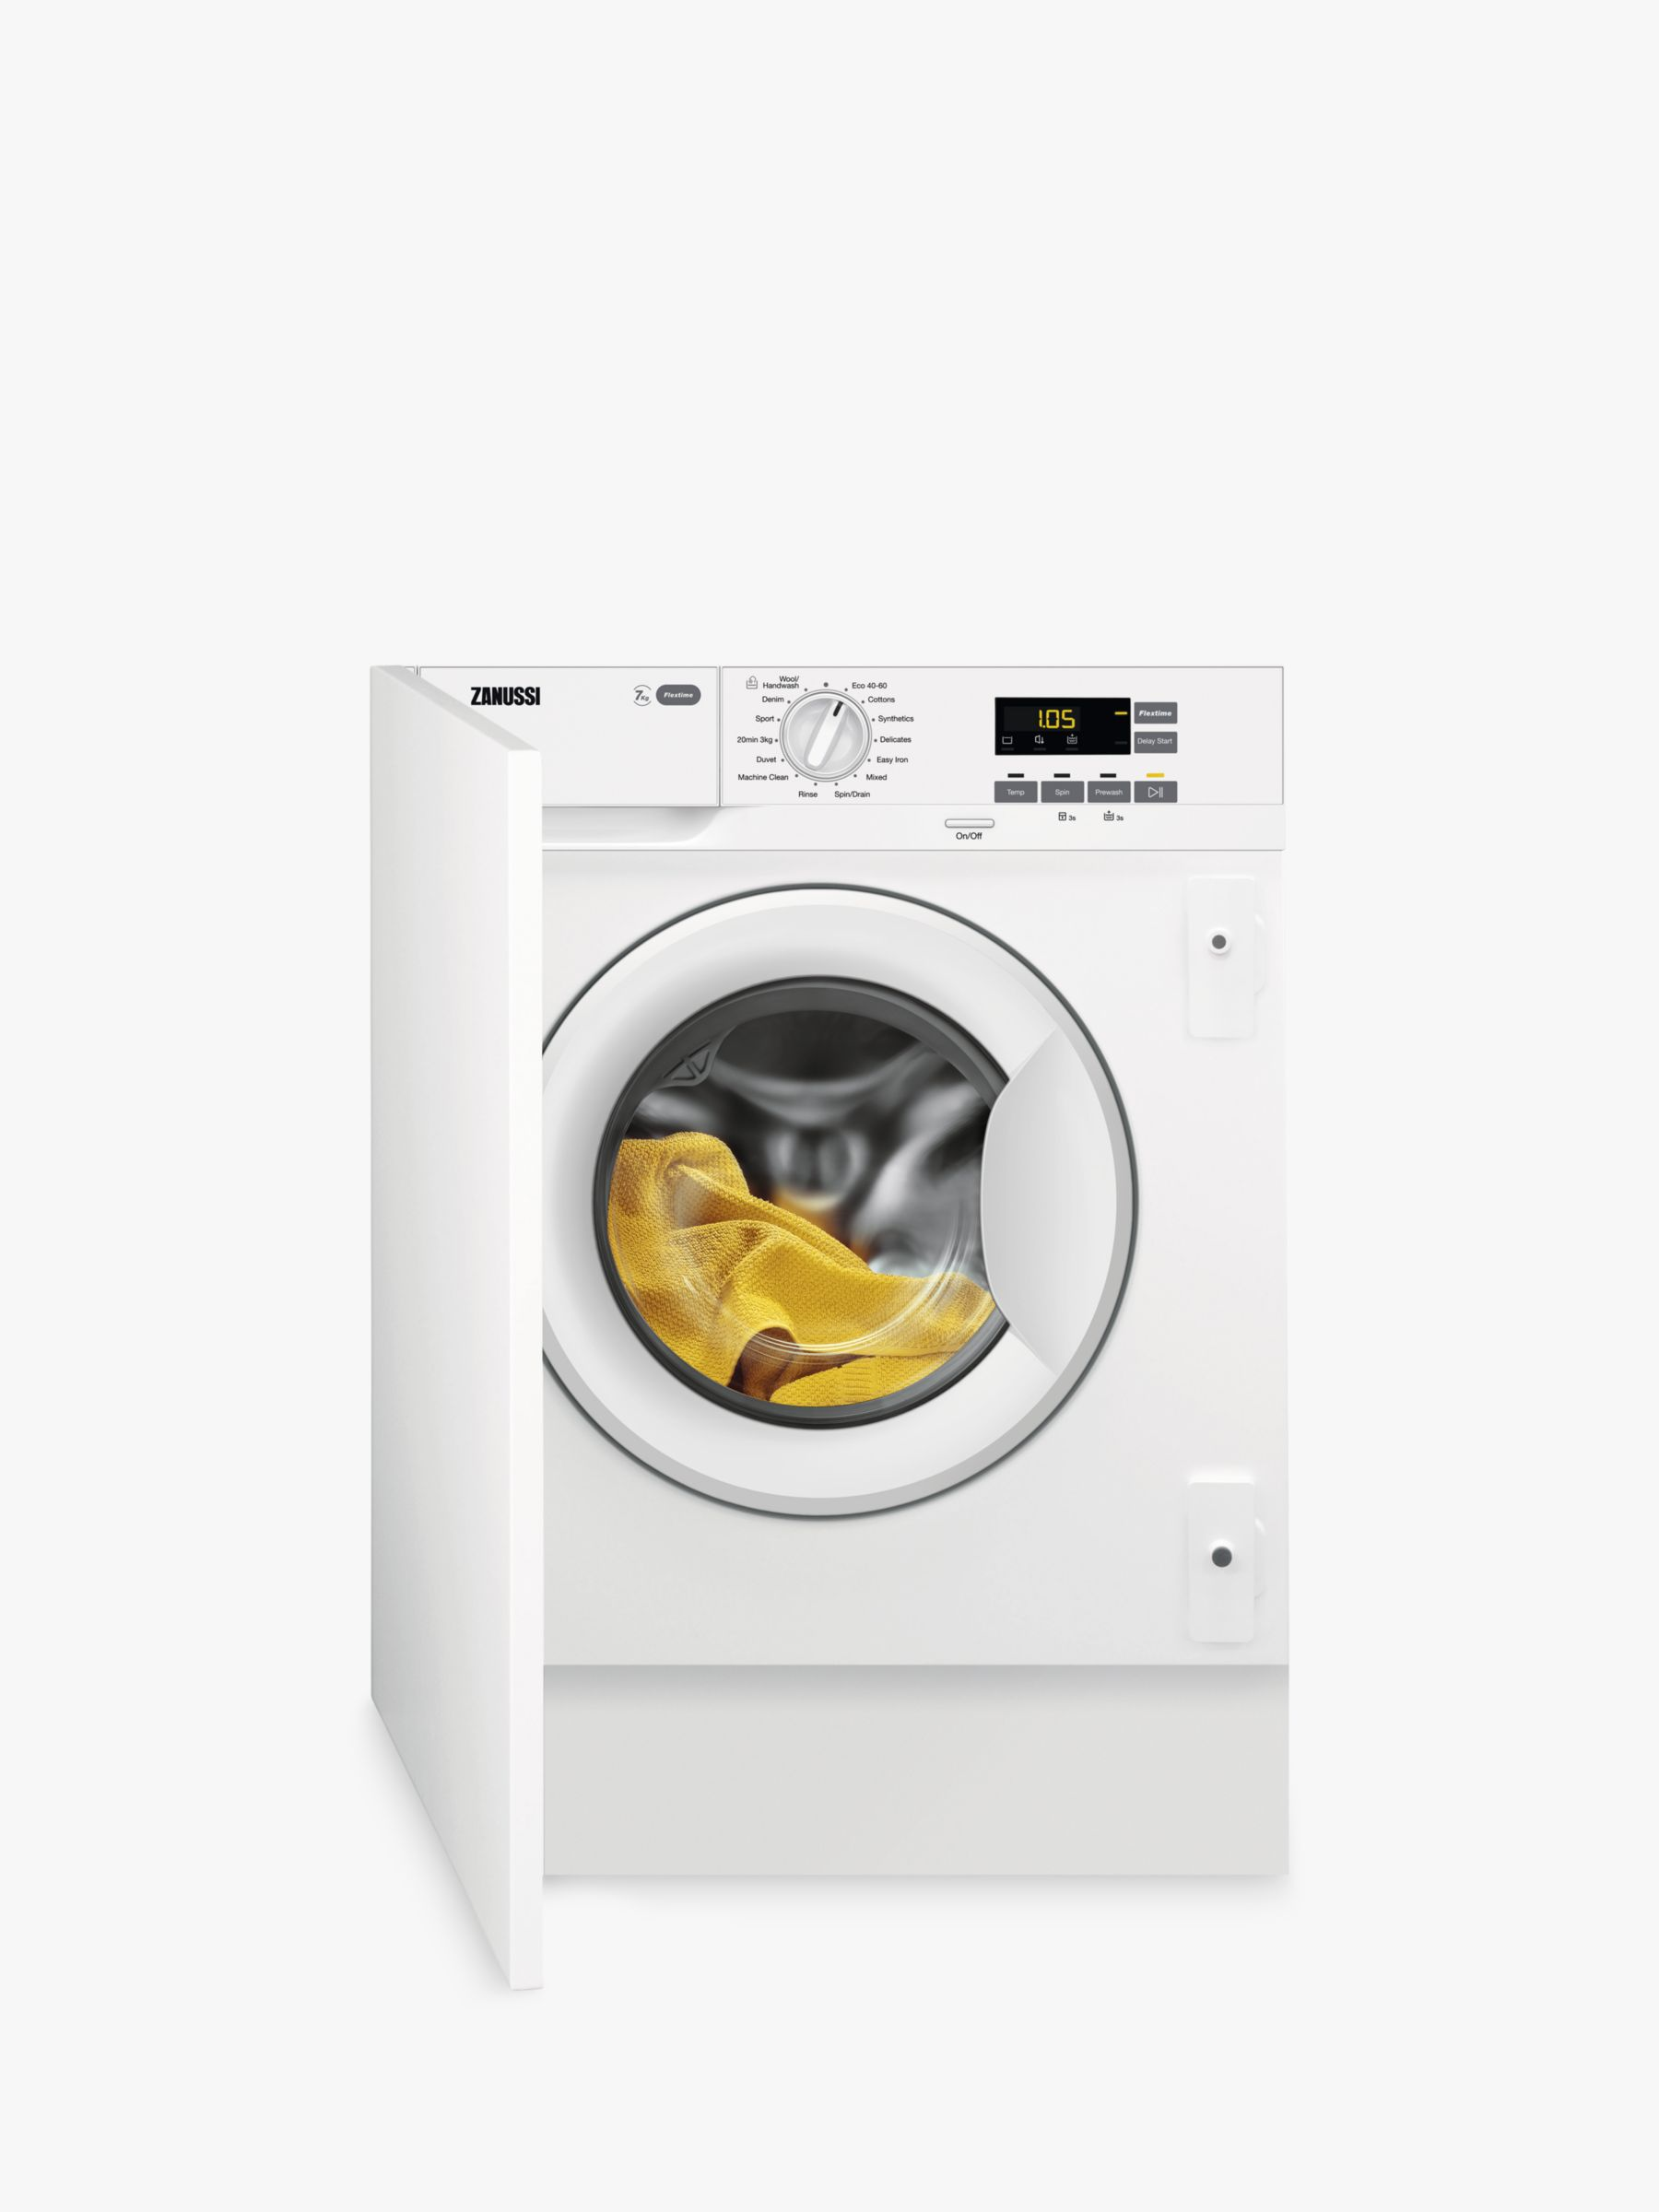 Zanussi Zanussi Z712W43BI Integrated Washing Machine, 7kg Load, A+++ Energy Rating, White